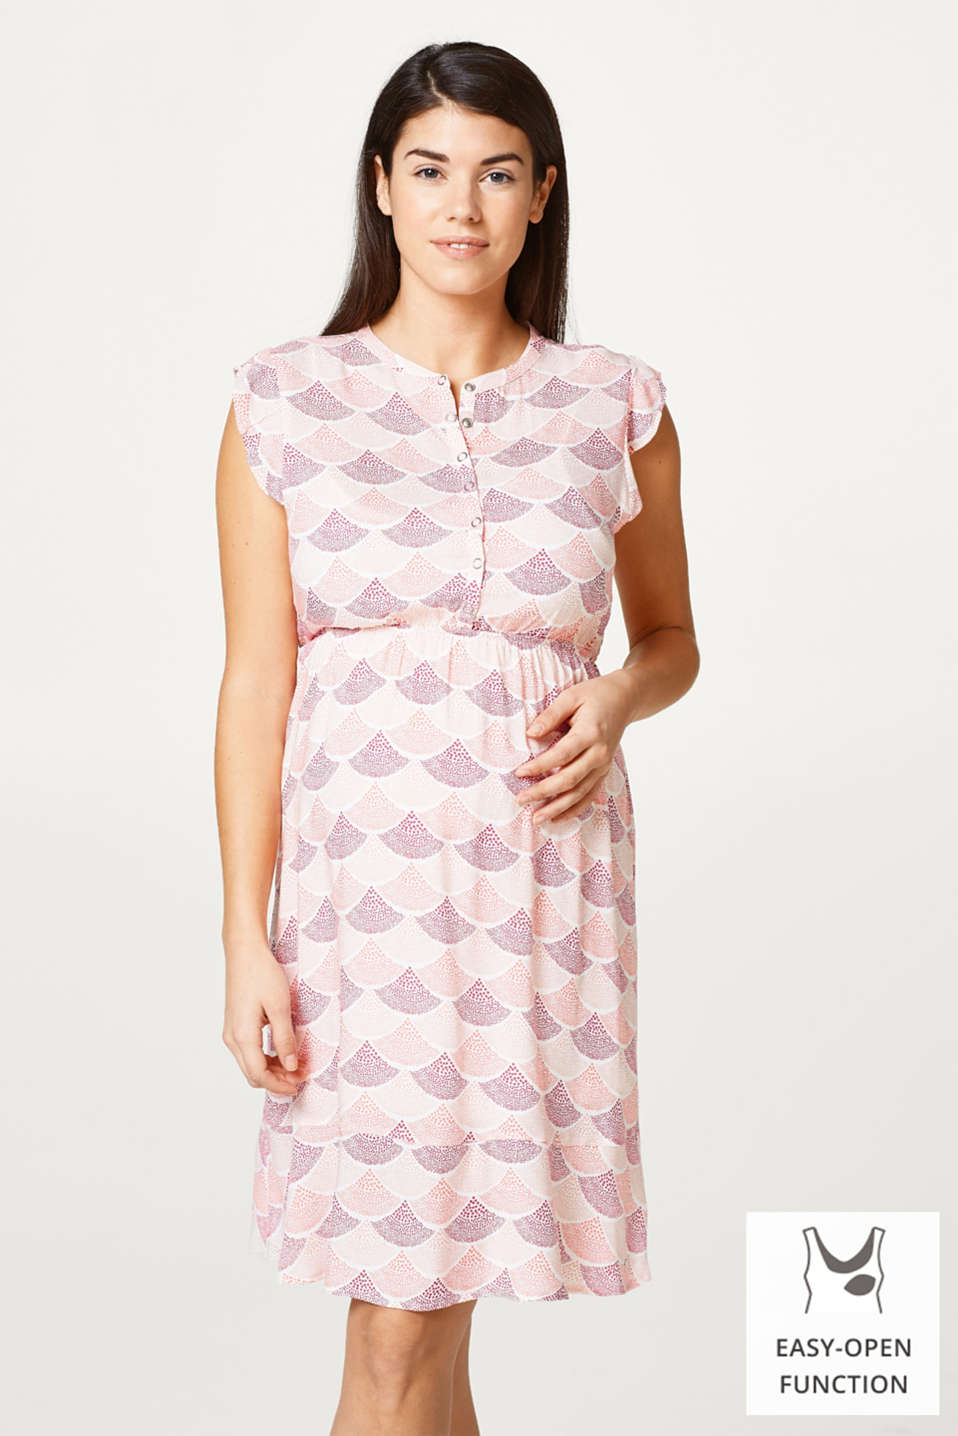 Esprit - Printed dress with integrated nursing top